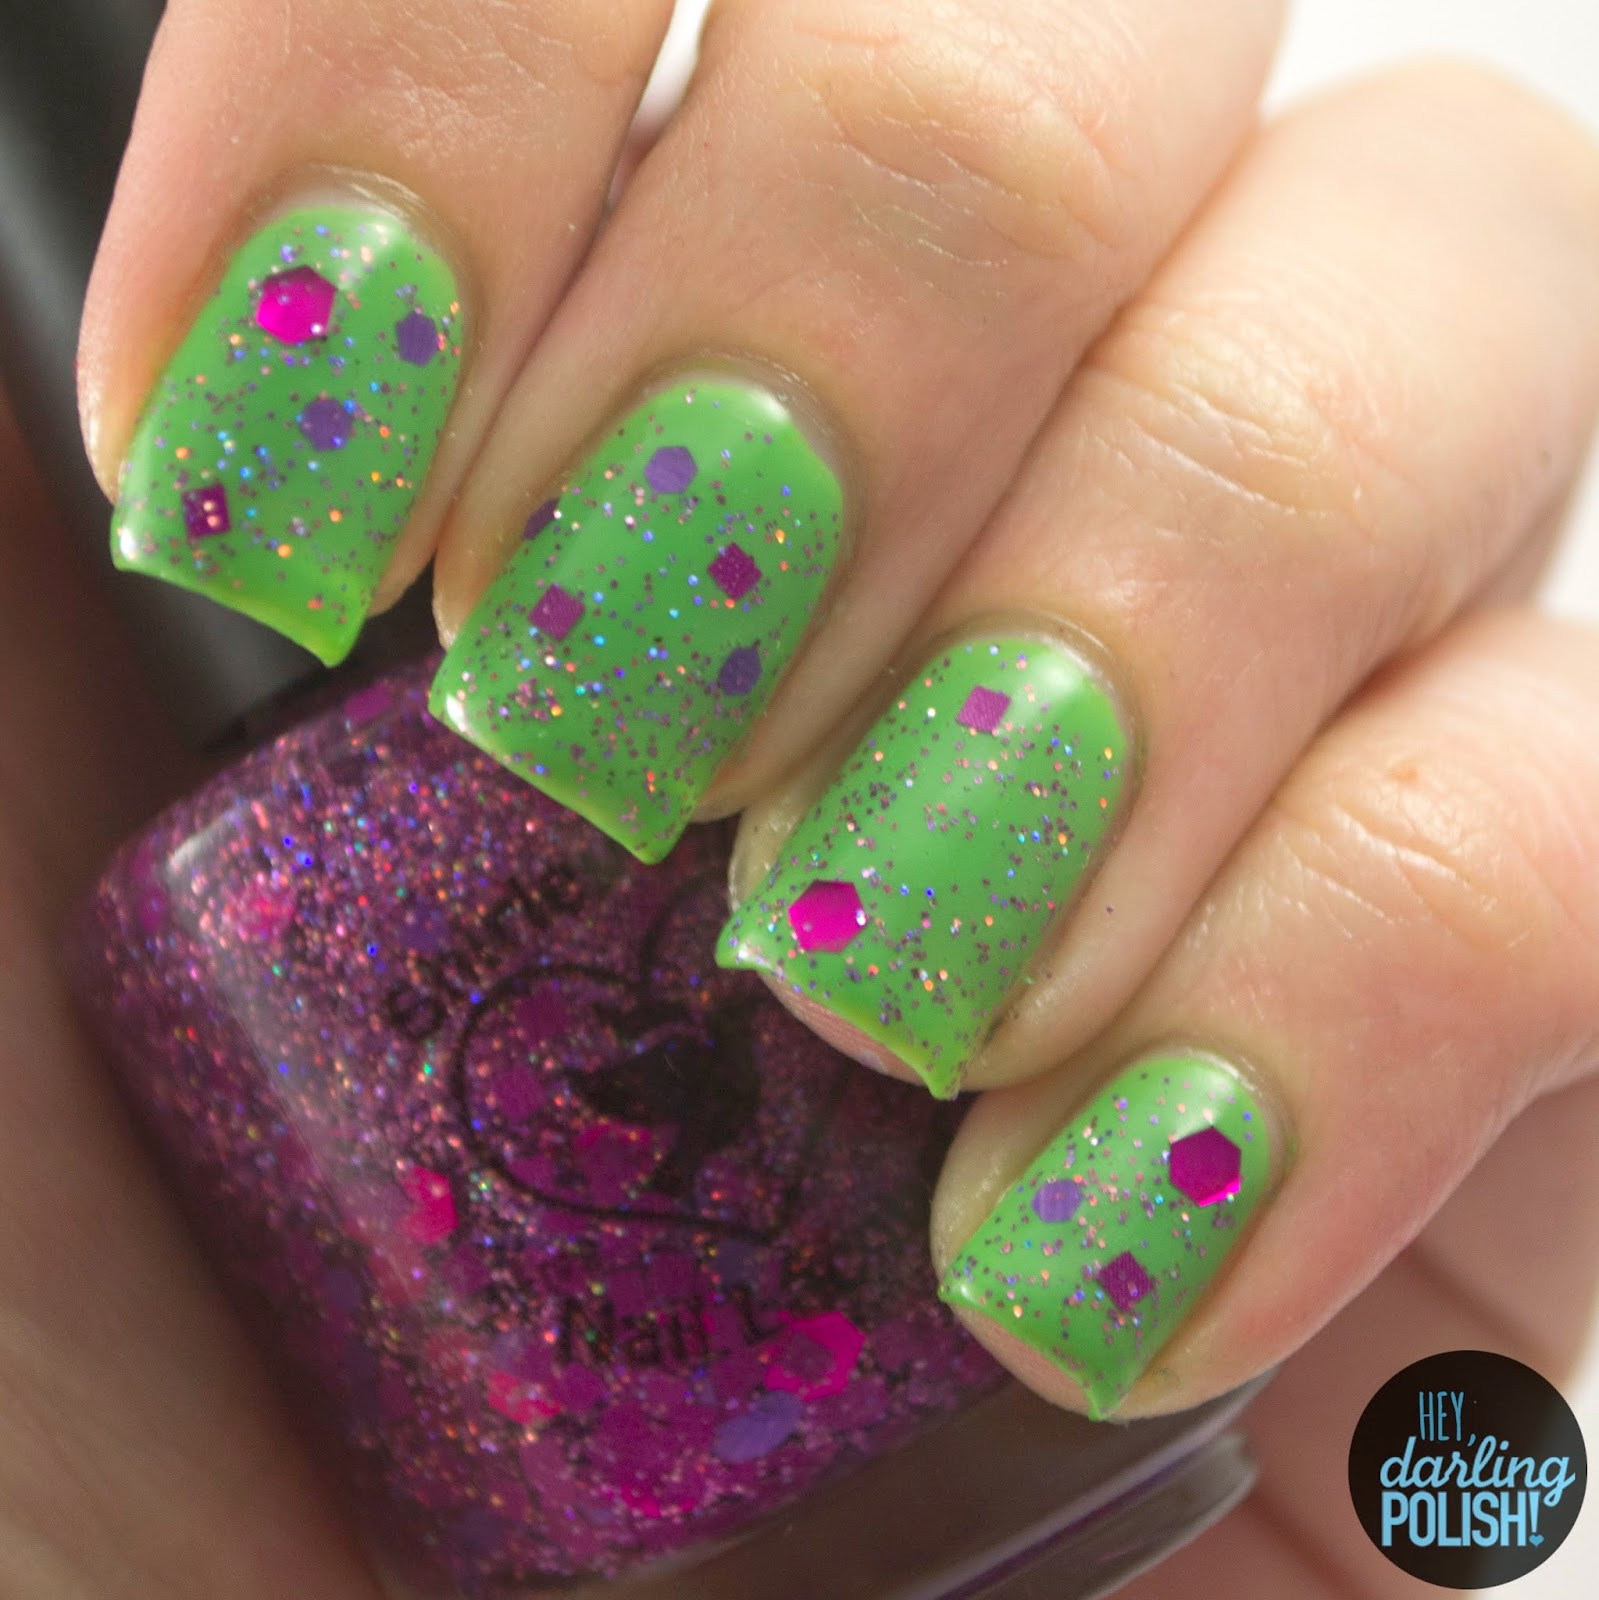 green, knot-knot, glitter, purple, nails, nail polish, polish, indie, indie nail polish, indie polish, hey darling polish, shirley ann nail lacquer, swatch